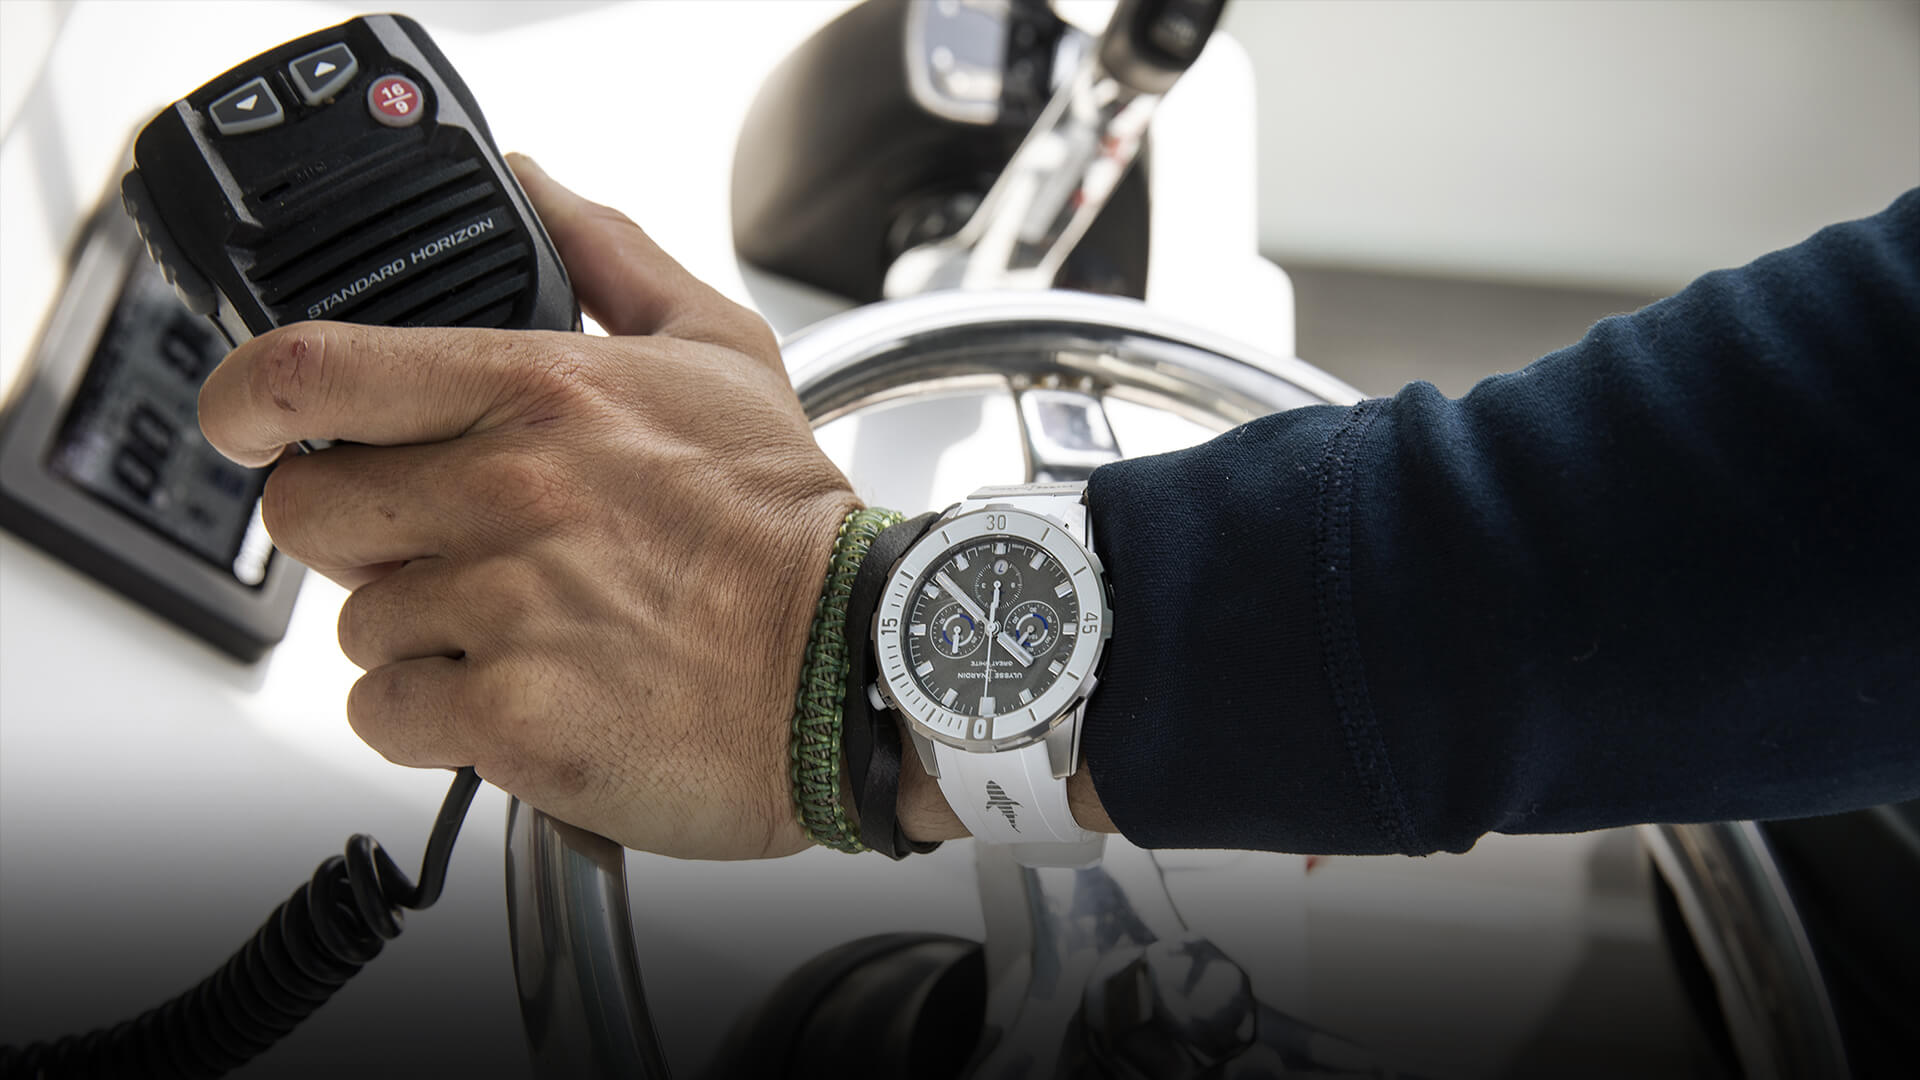 Diver Chronograph Great White